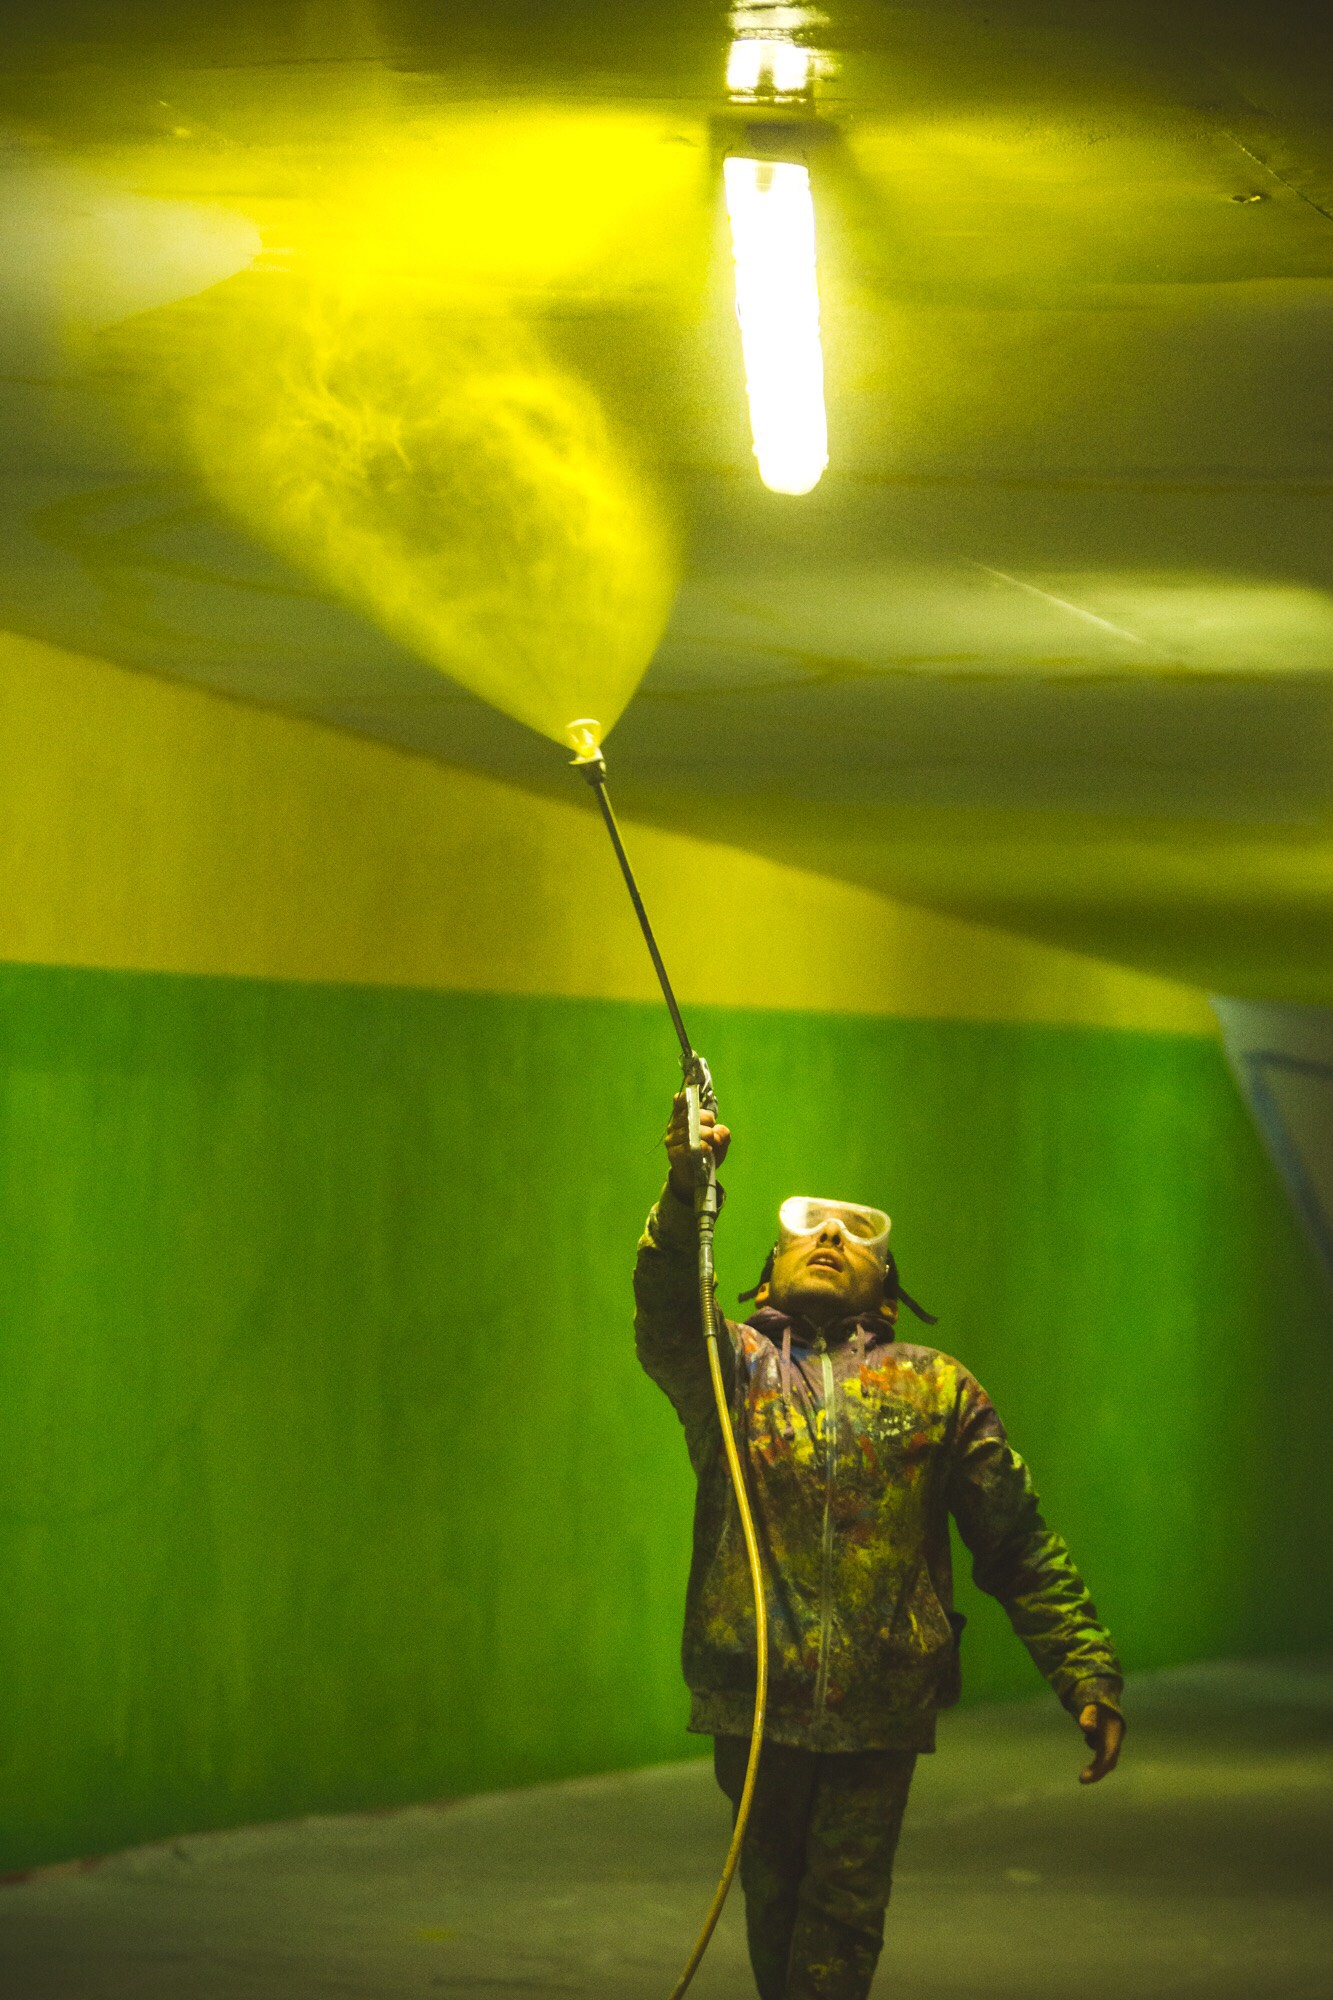 A photo of Elian Chali wearing goggles and looking up at the ceiling above him, which he is spraying with a power washer. The image is lit in a green fluorescent light.